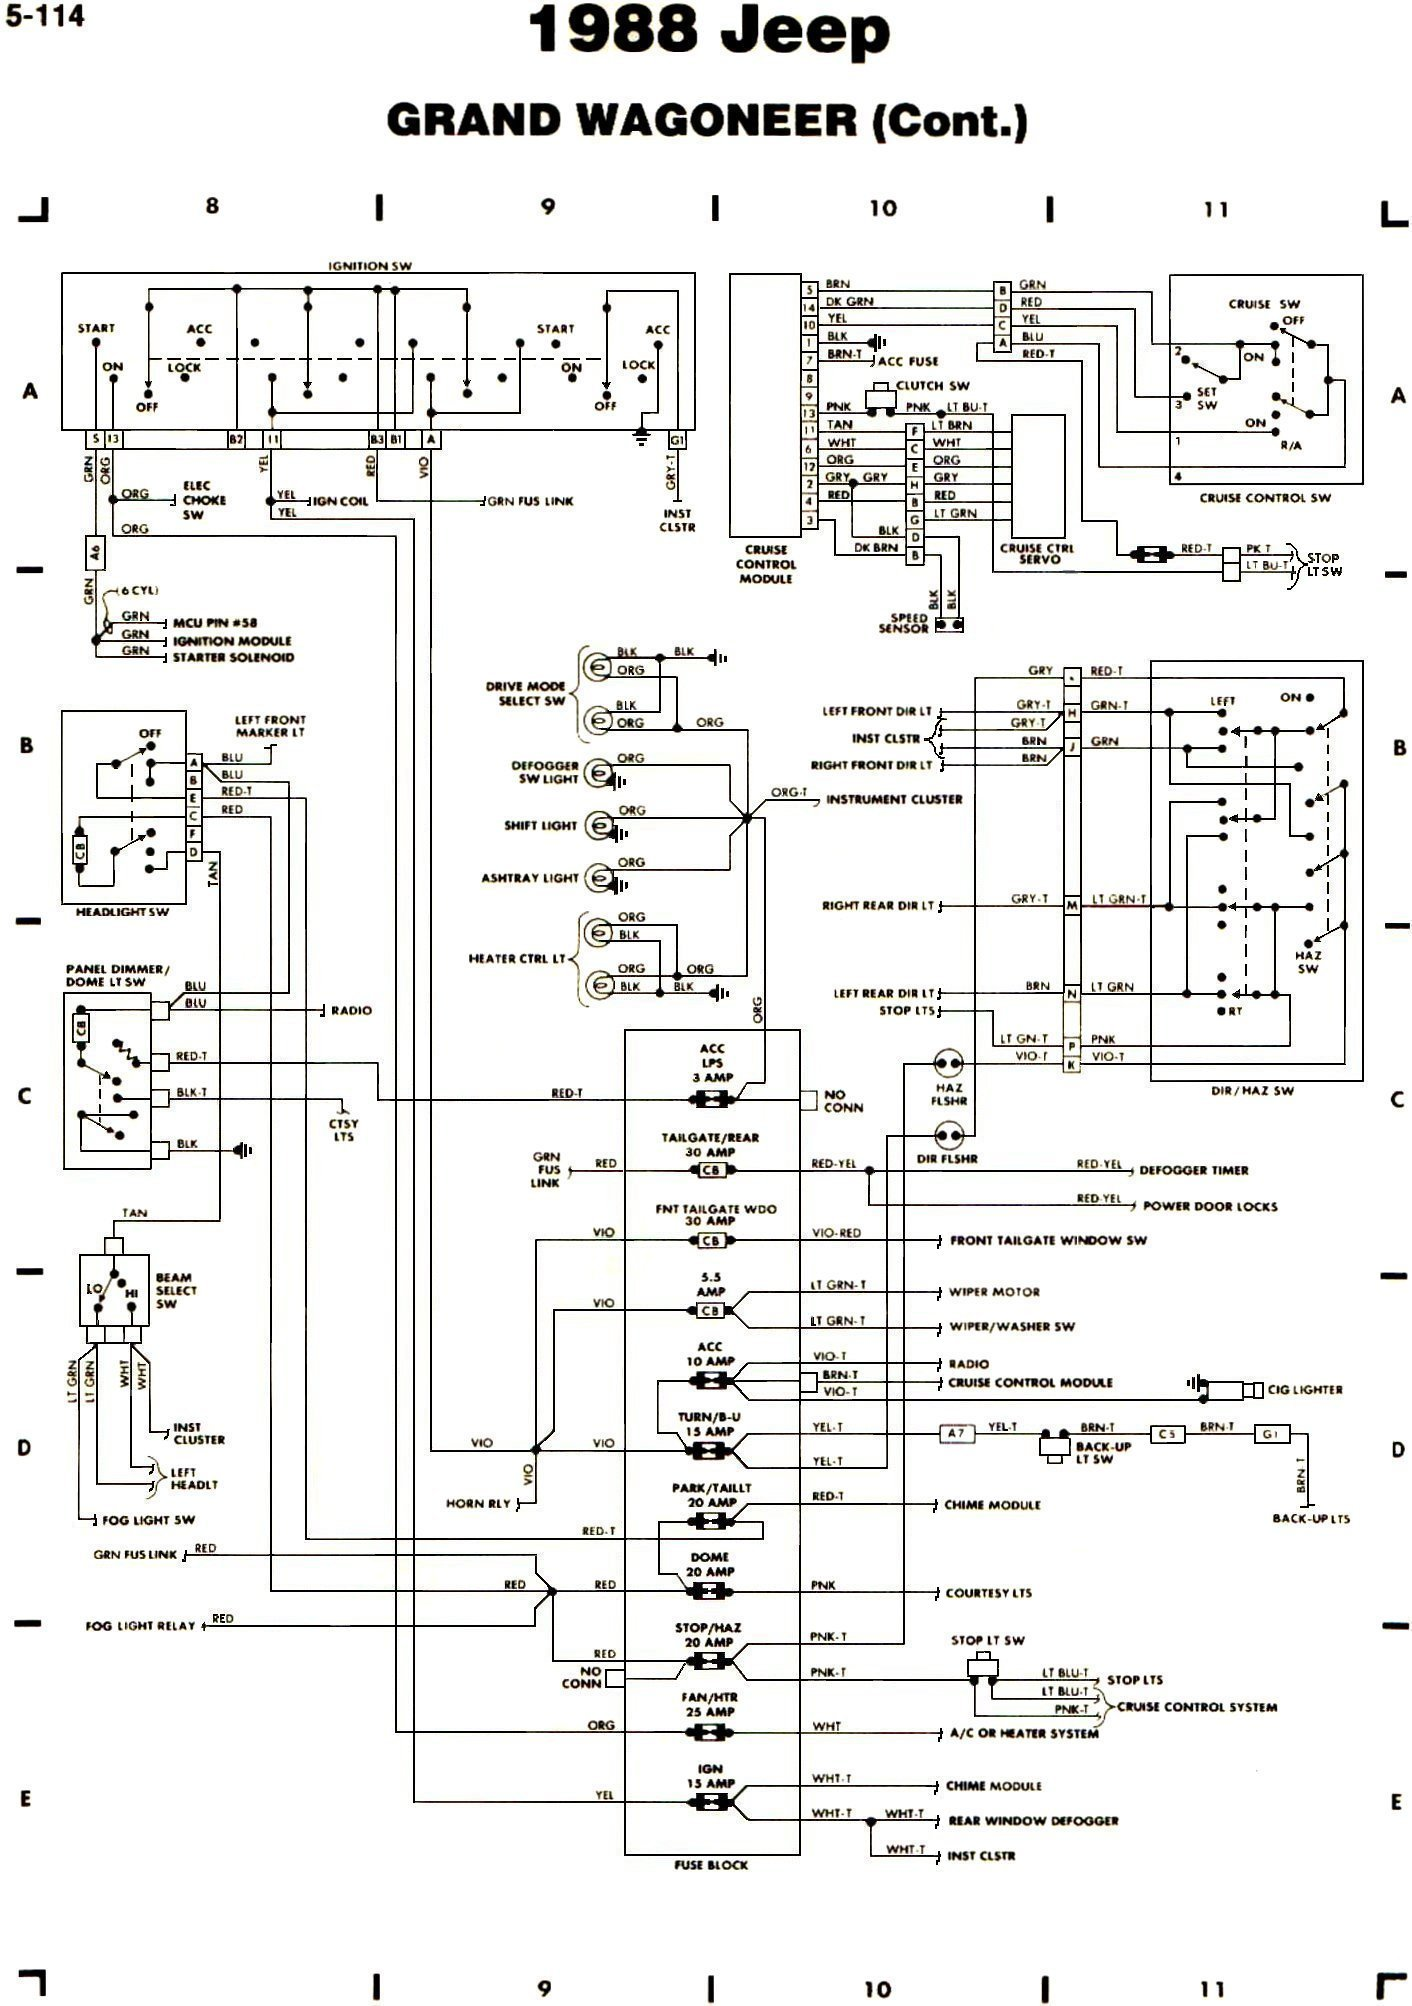 freightliner wiring fuse box diagram jRoIVIr 2007 freightliner fuse box diagram freightliner wiring diagram 1999 freightliner fl60 fuse box diagram at eliteediting.co